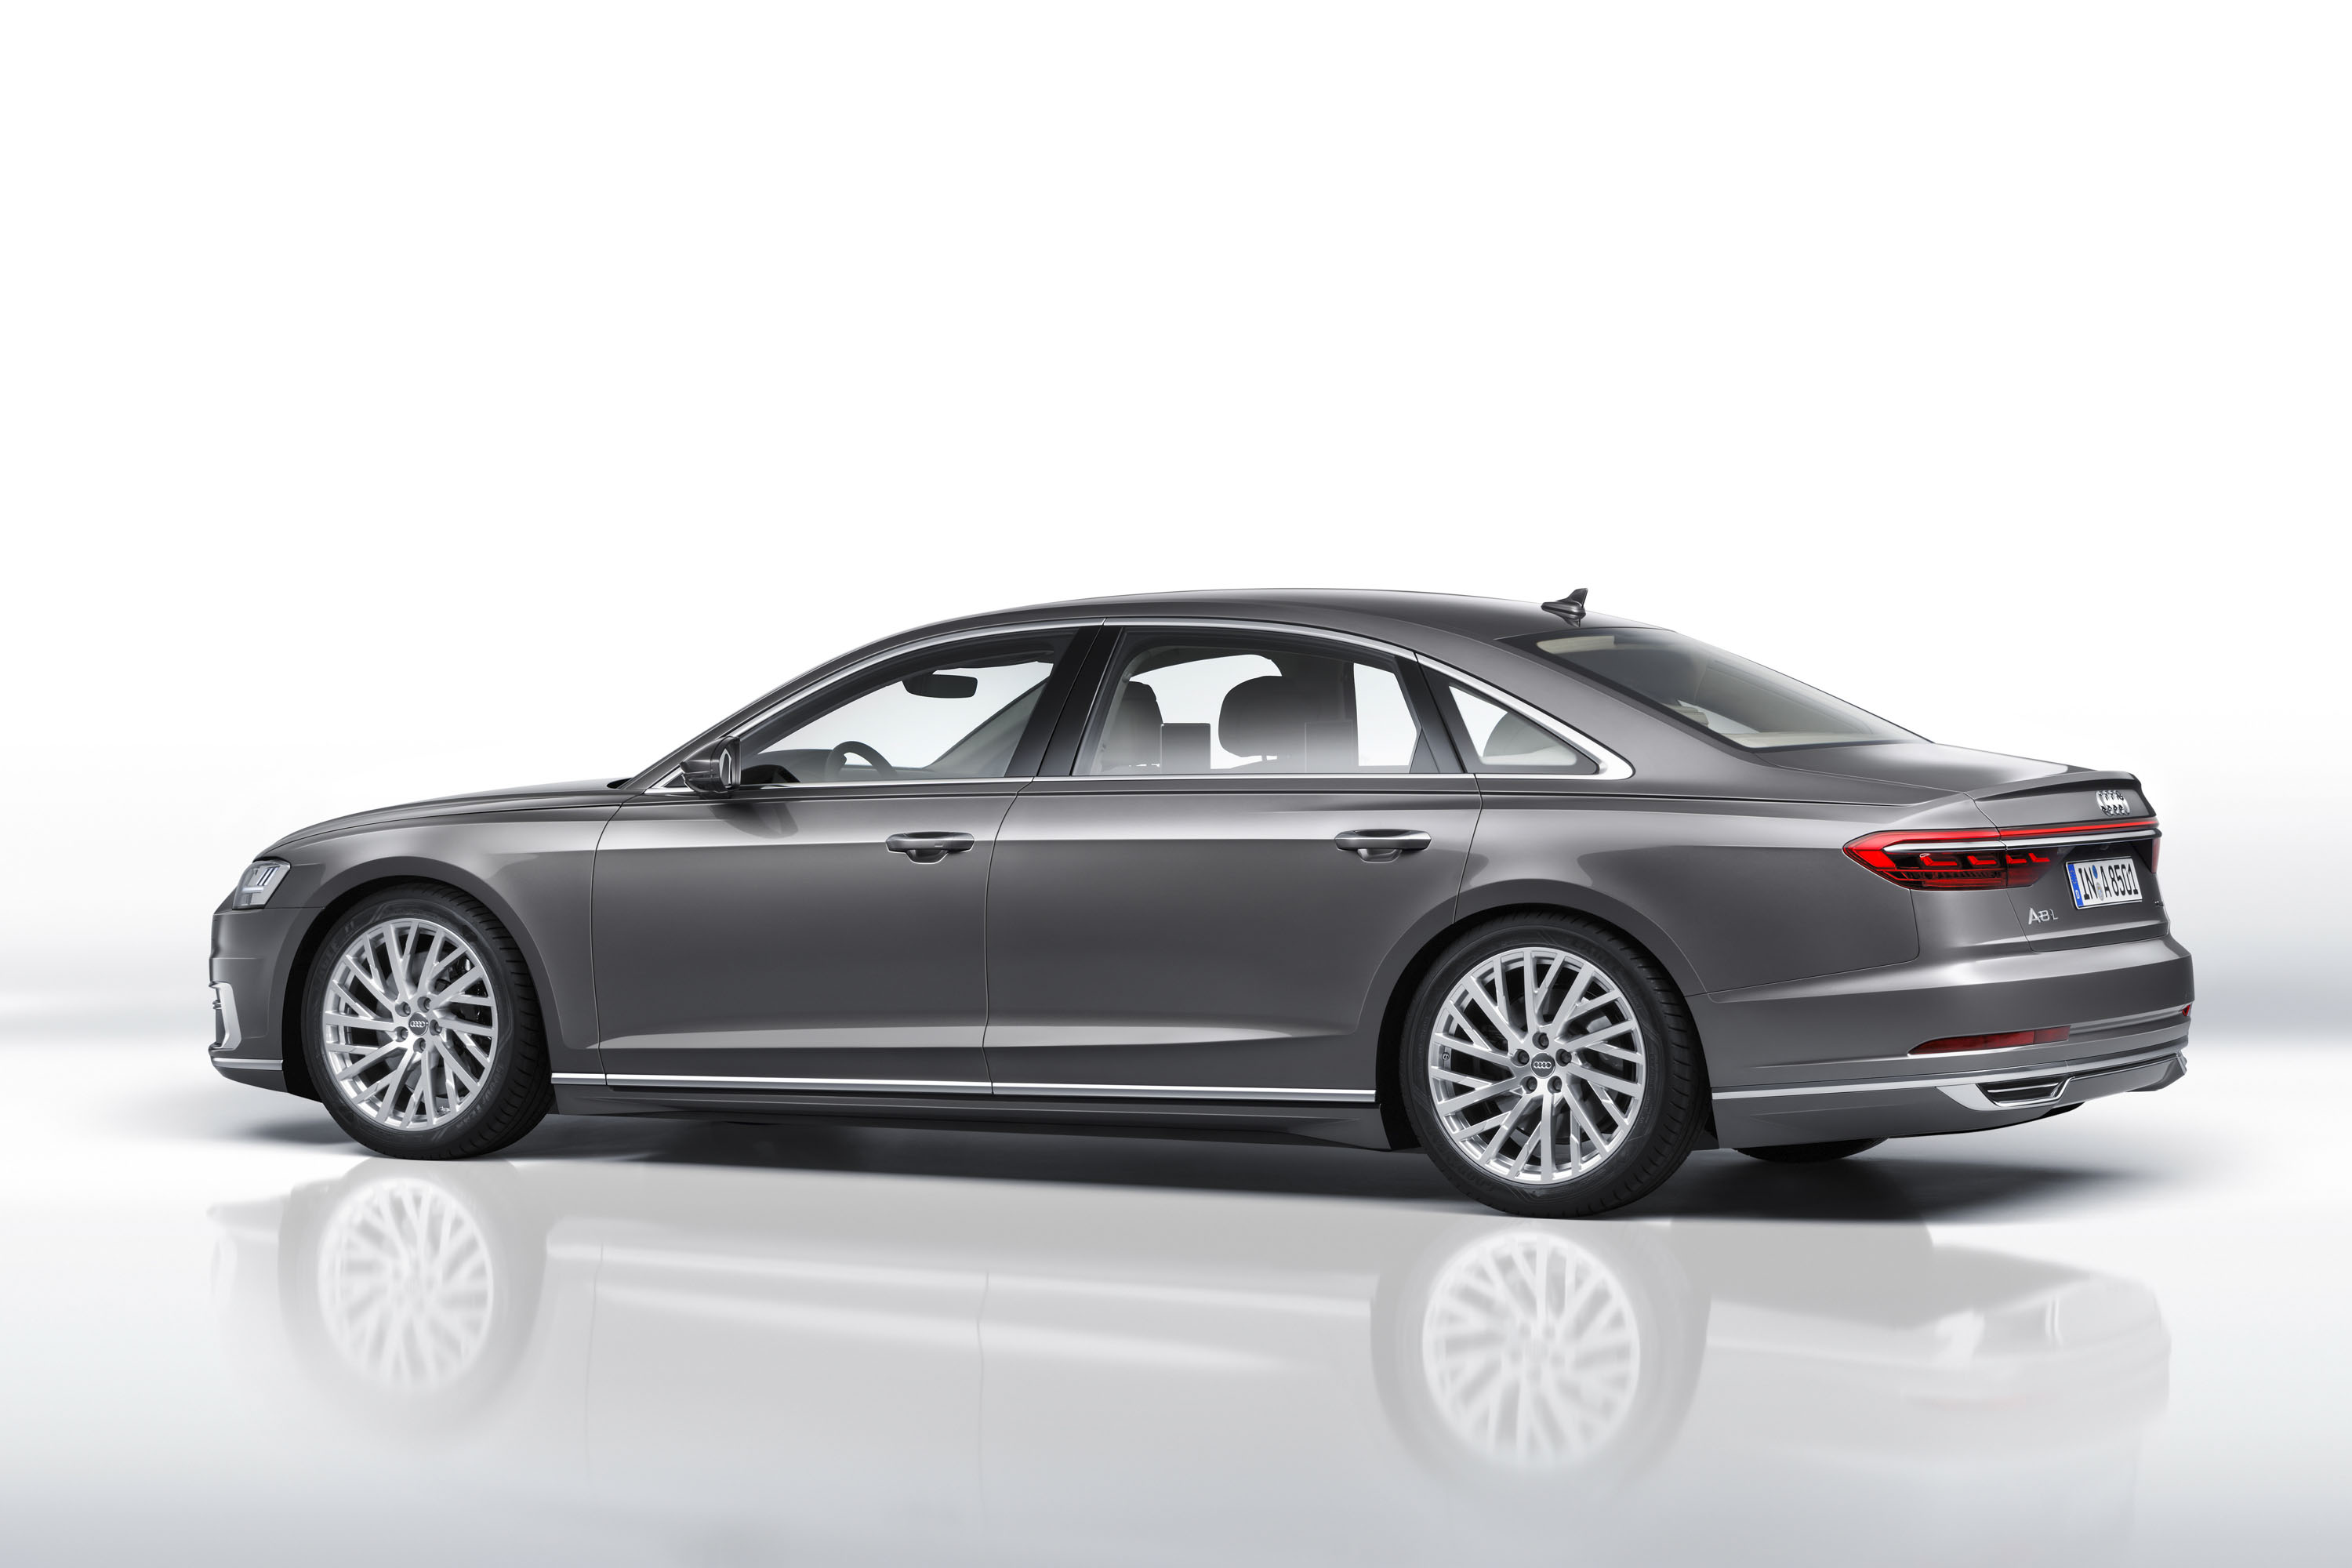 wheel reviews drive all safety photo new quattro l lwb price ratings photos features audi sedan